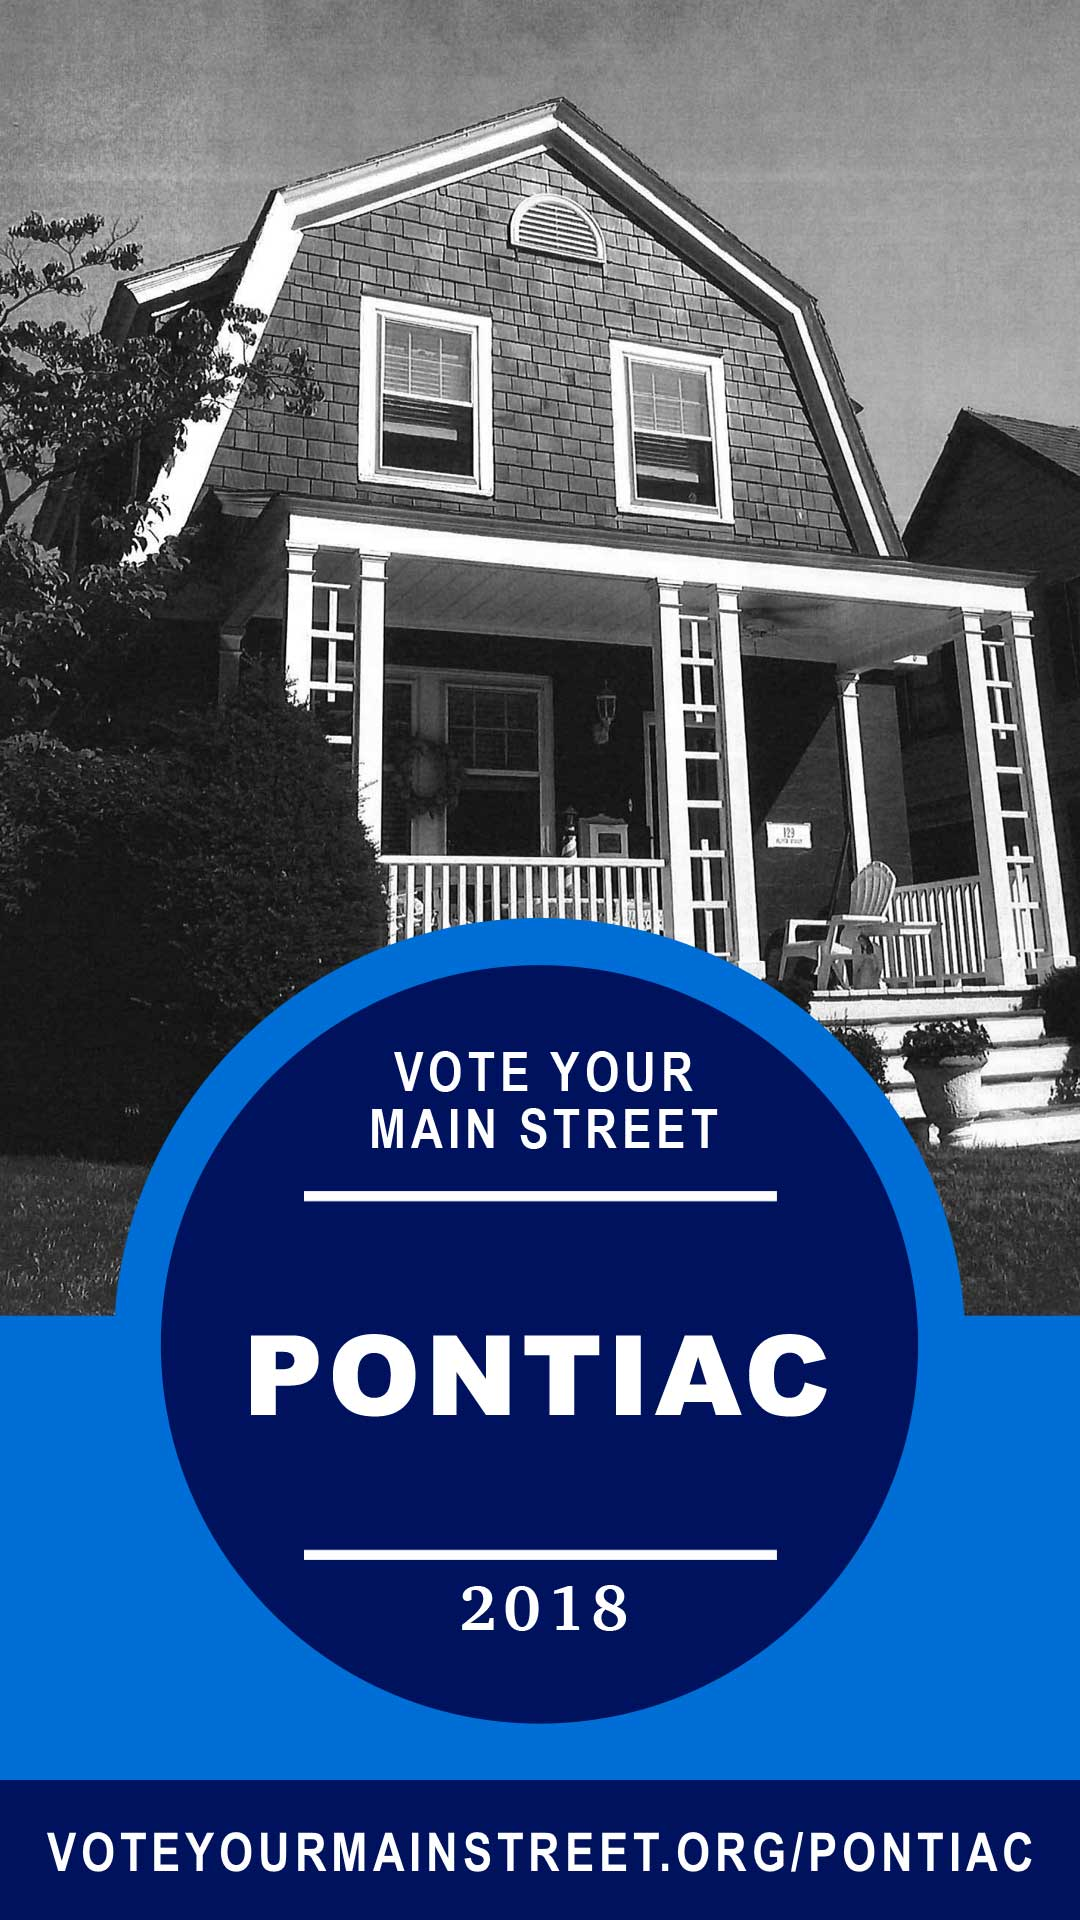 A black and white photo of a bungalow and porch with front railing. A blue logo covers the bottom 2/3 of the image. It has a darker blue circle inside with white text that reads: Vote Your Main Street | Pontiac | 2018. A dark blue band runs along with bottom with the URL in white: voteyourmainstreet.org/pontiac.